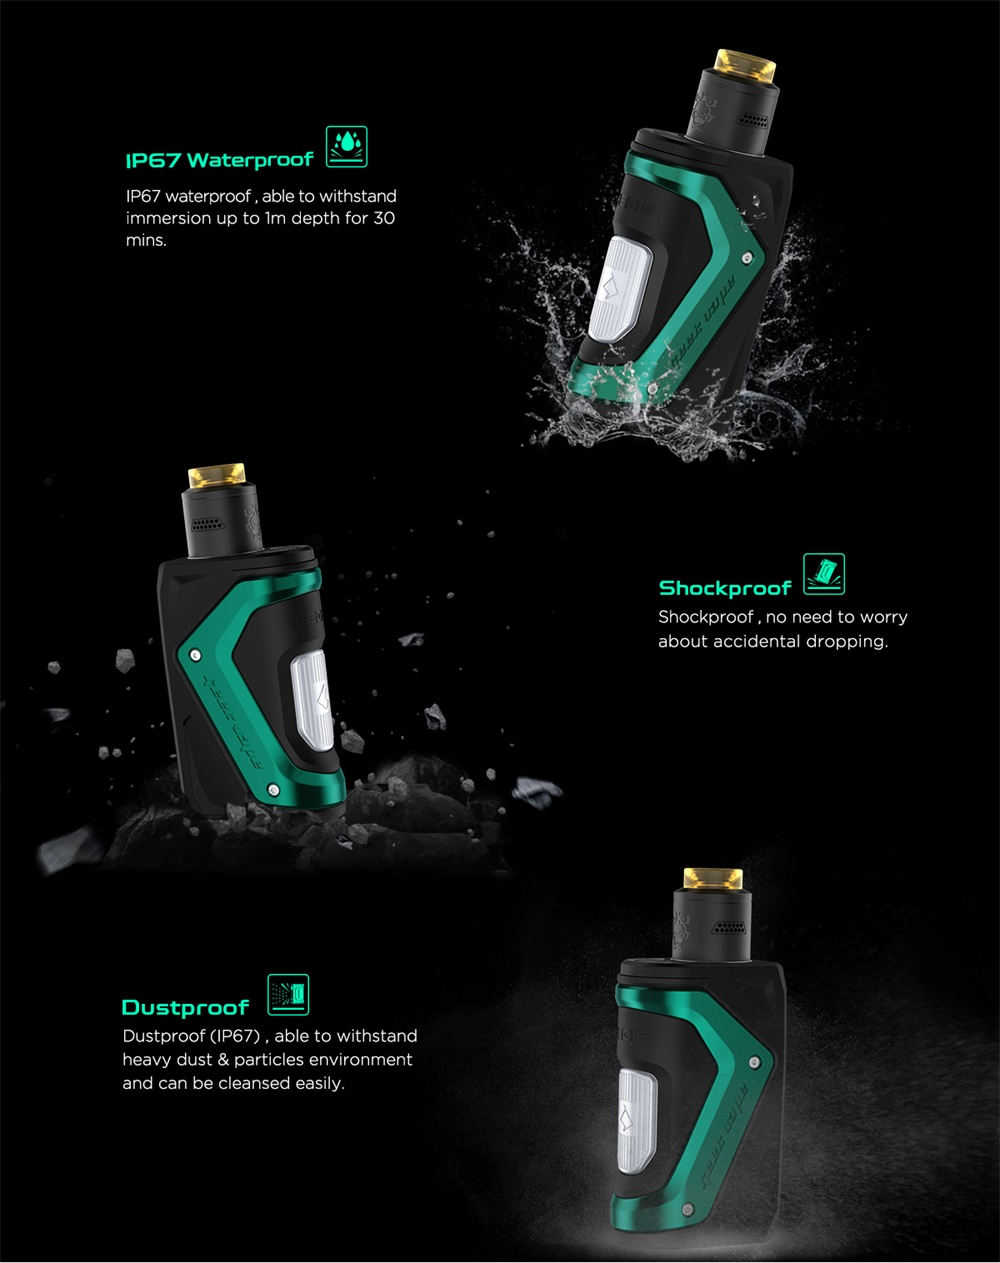 GeekVape Aegis Squonker Kit IP67 waterproof, shockproof and dustproof